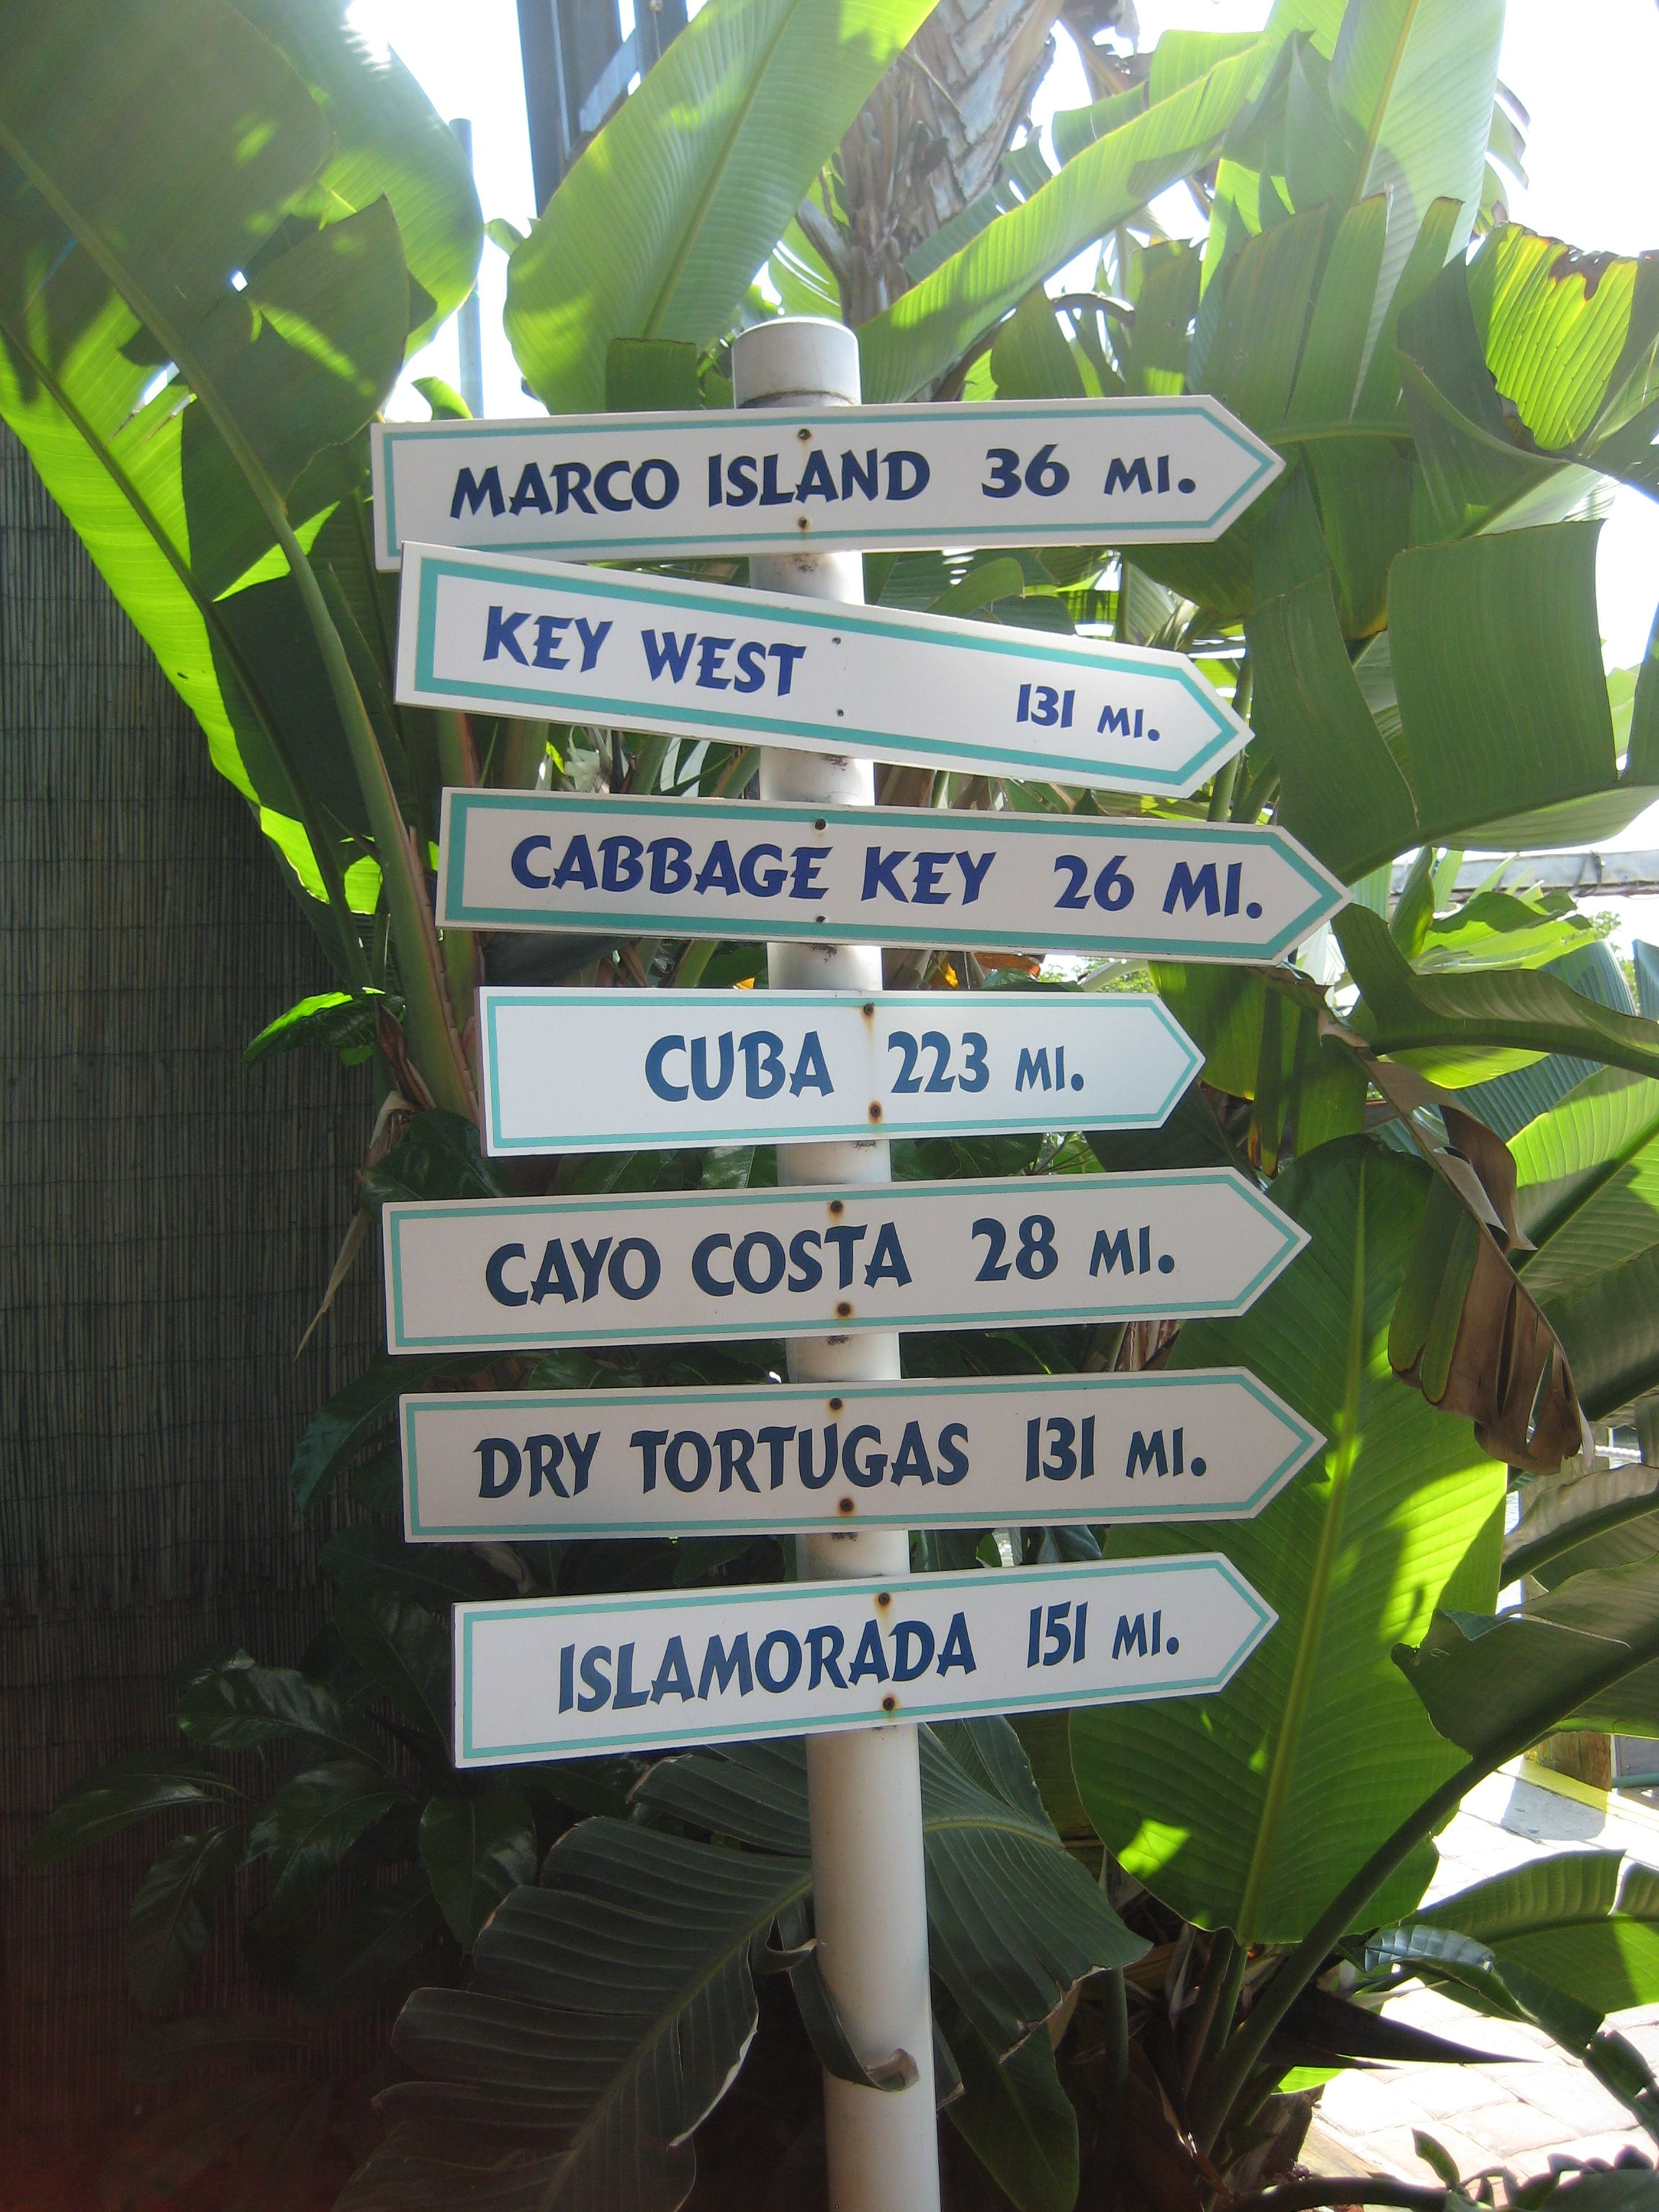 Are you lost? Sanibel island, Marco island, Dry tortugas